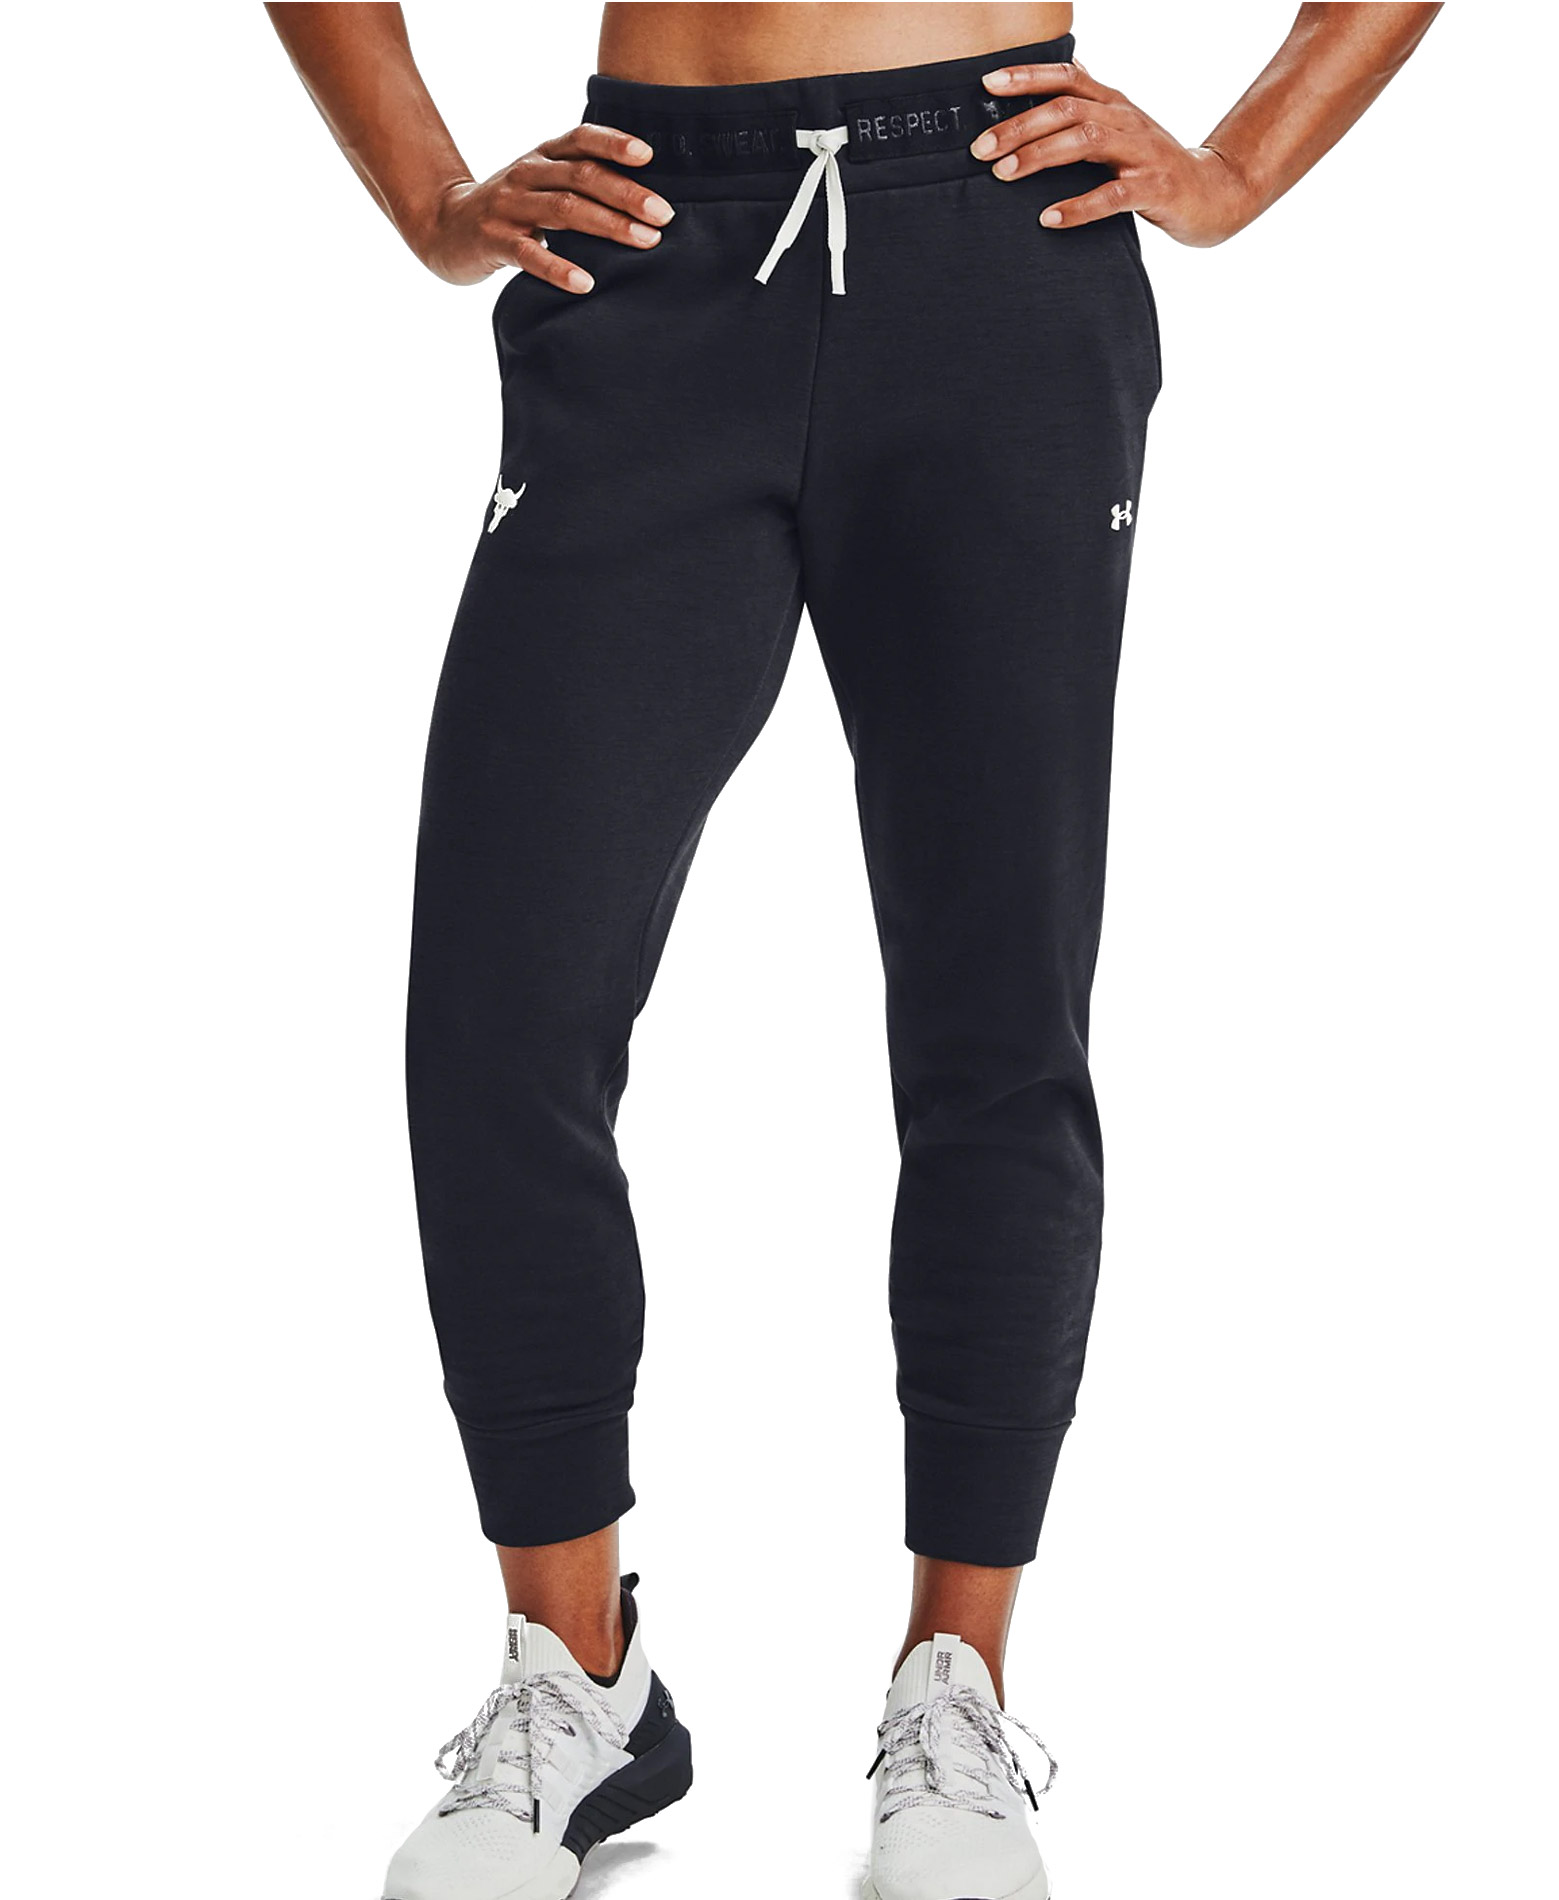 UNDER ARMOUR PRJCT ROCK CC FLEECE PANT 1356987-001 Μαύρο